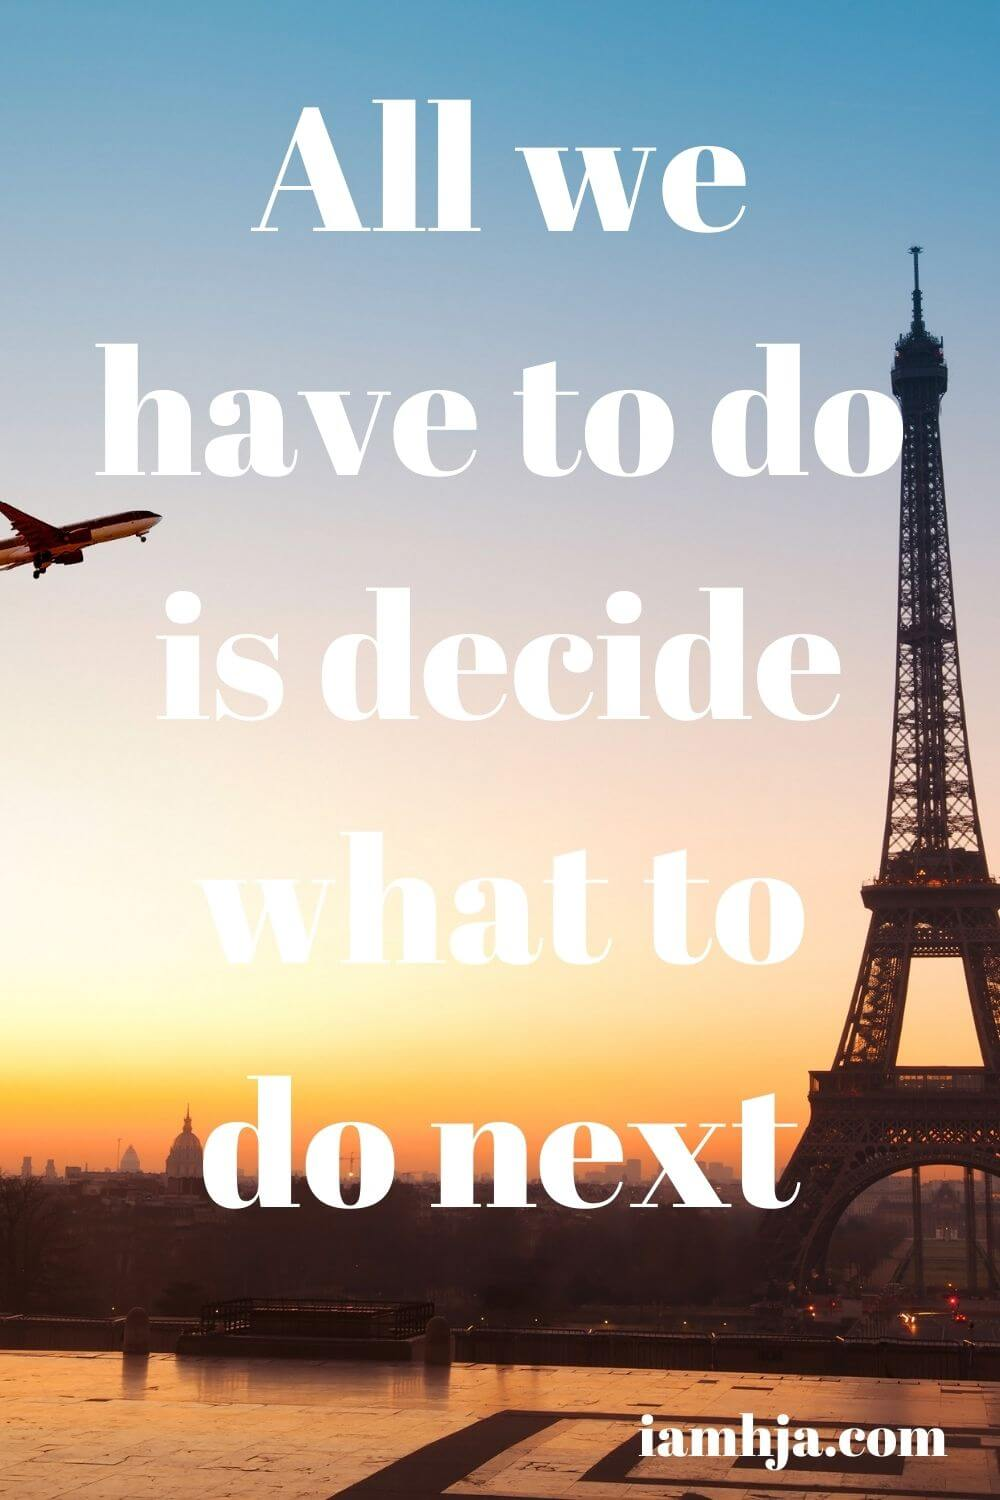 All we have to do is decide what to do next